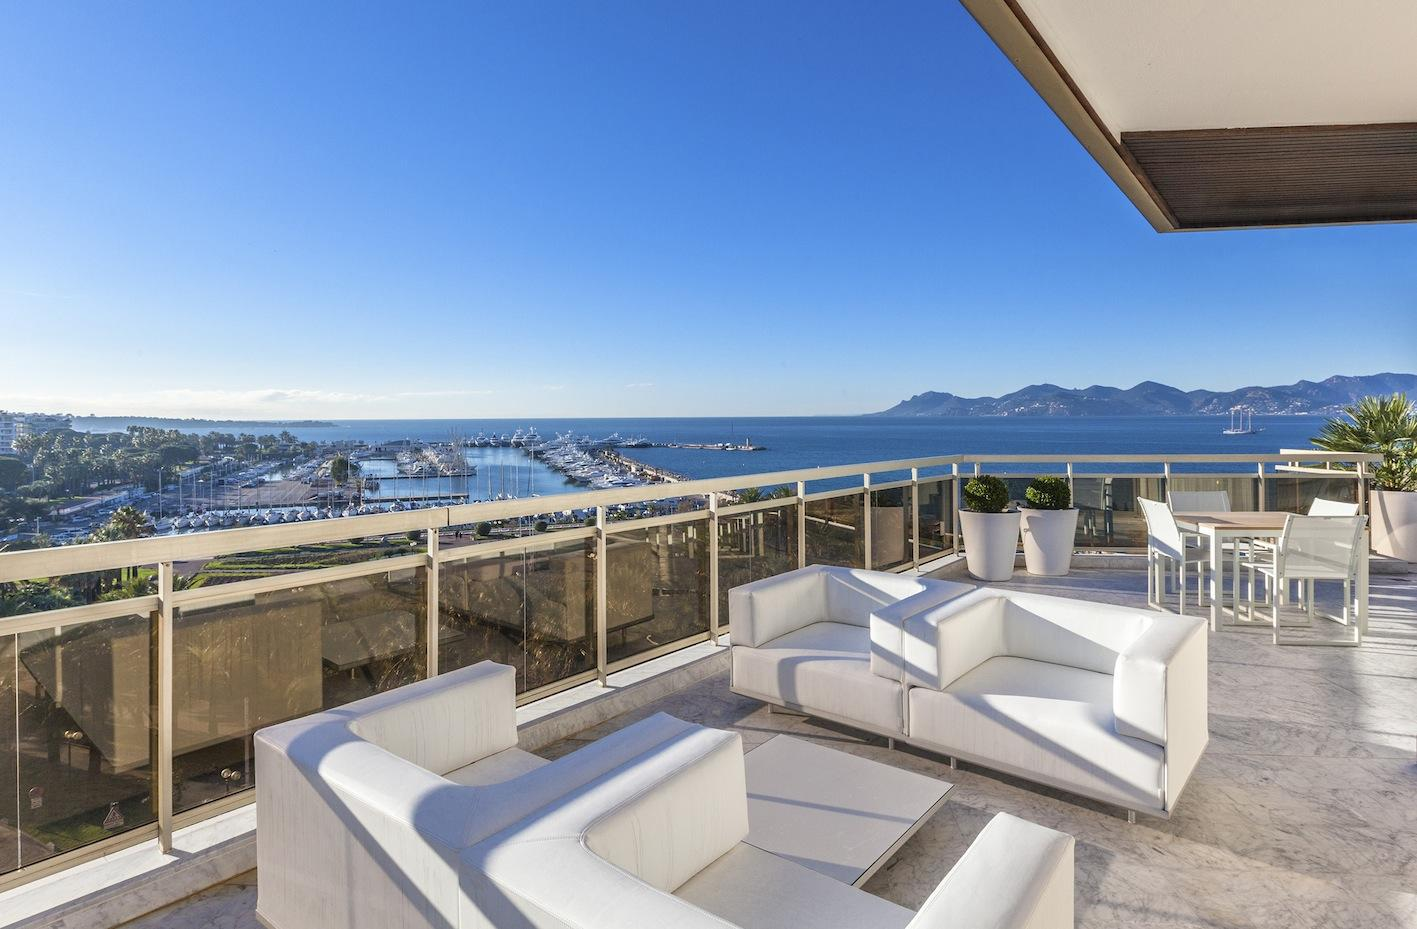 Renovated three bedroom on the Croisette with views